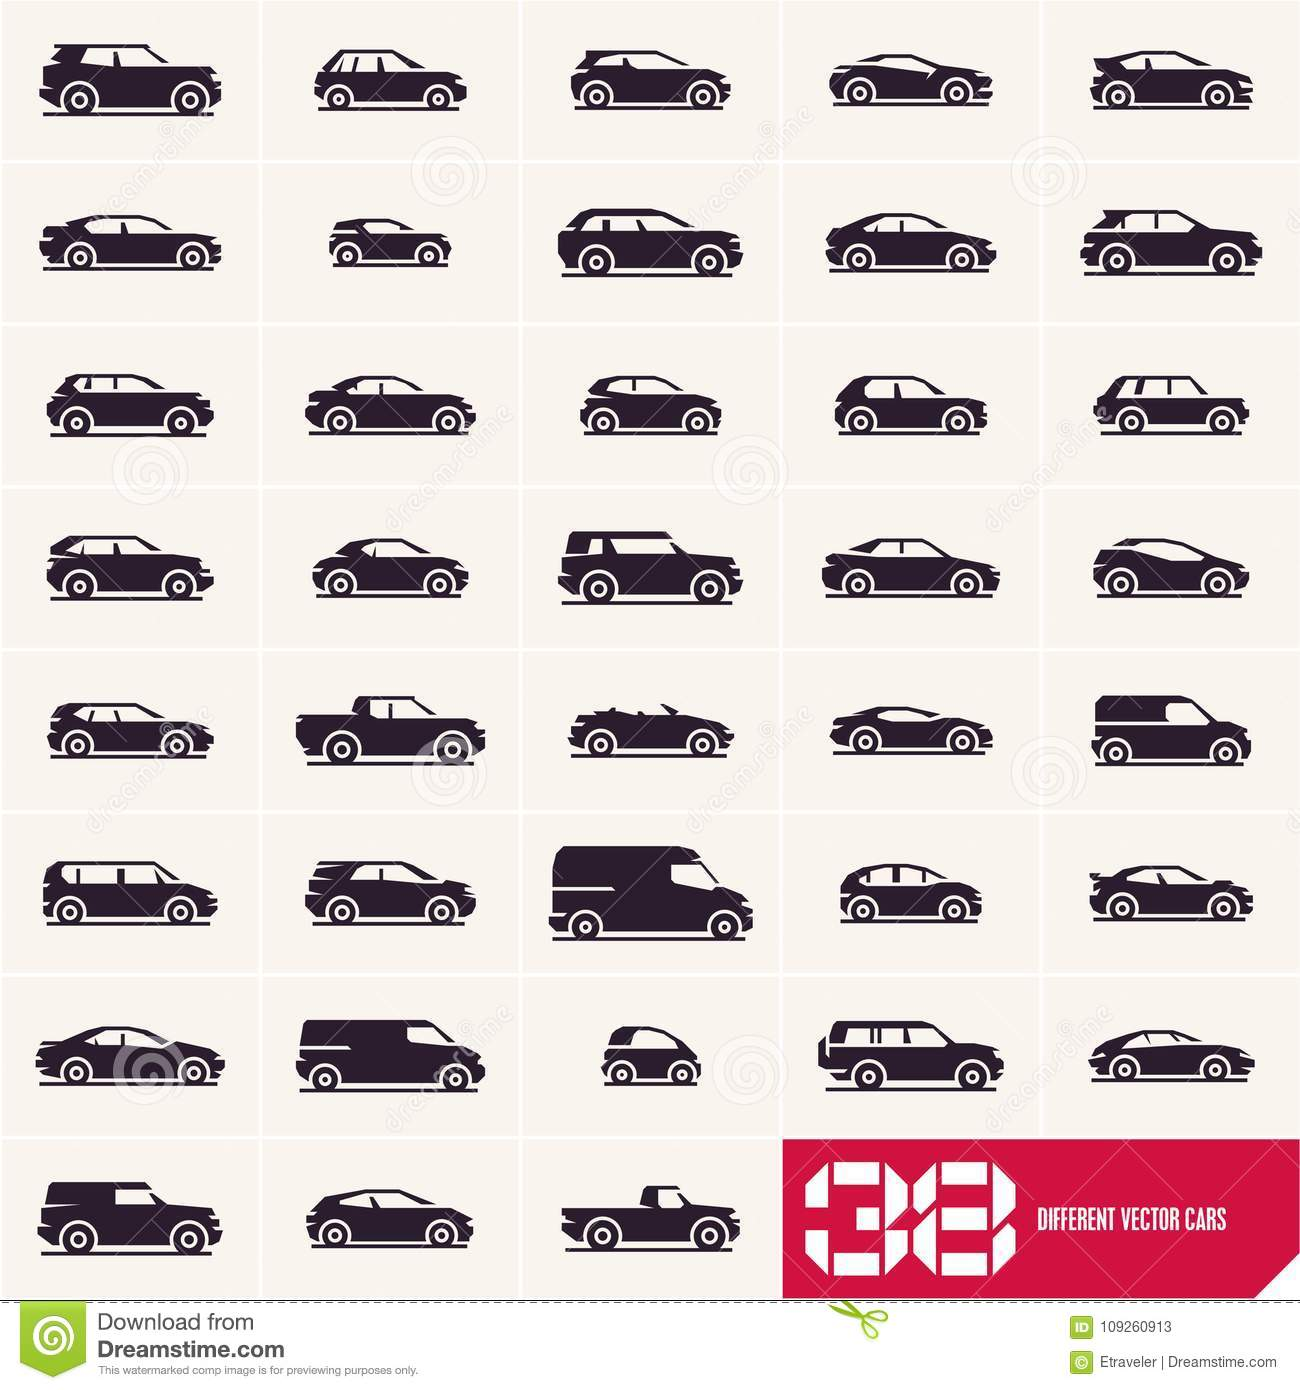 Cars Icons Set, Different Vector Car Types Stock Vector